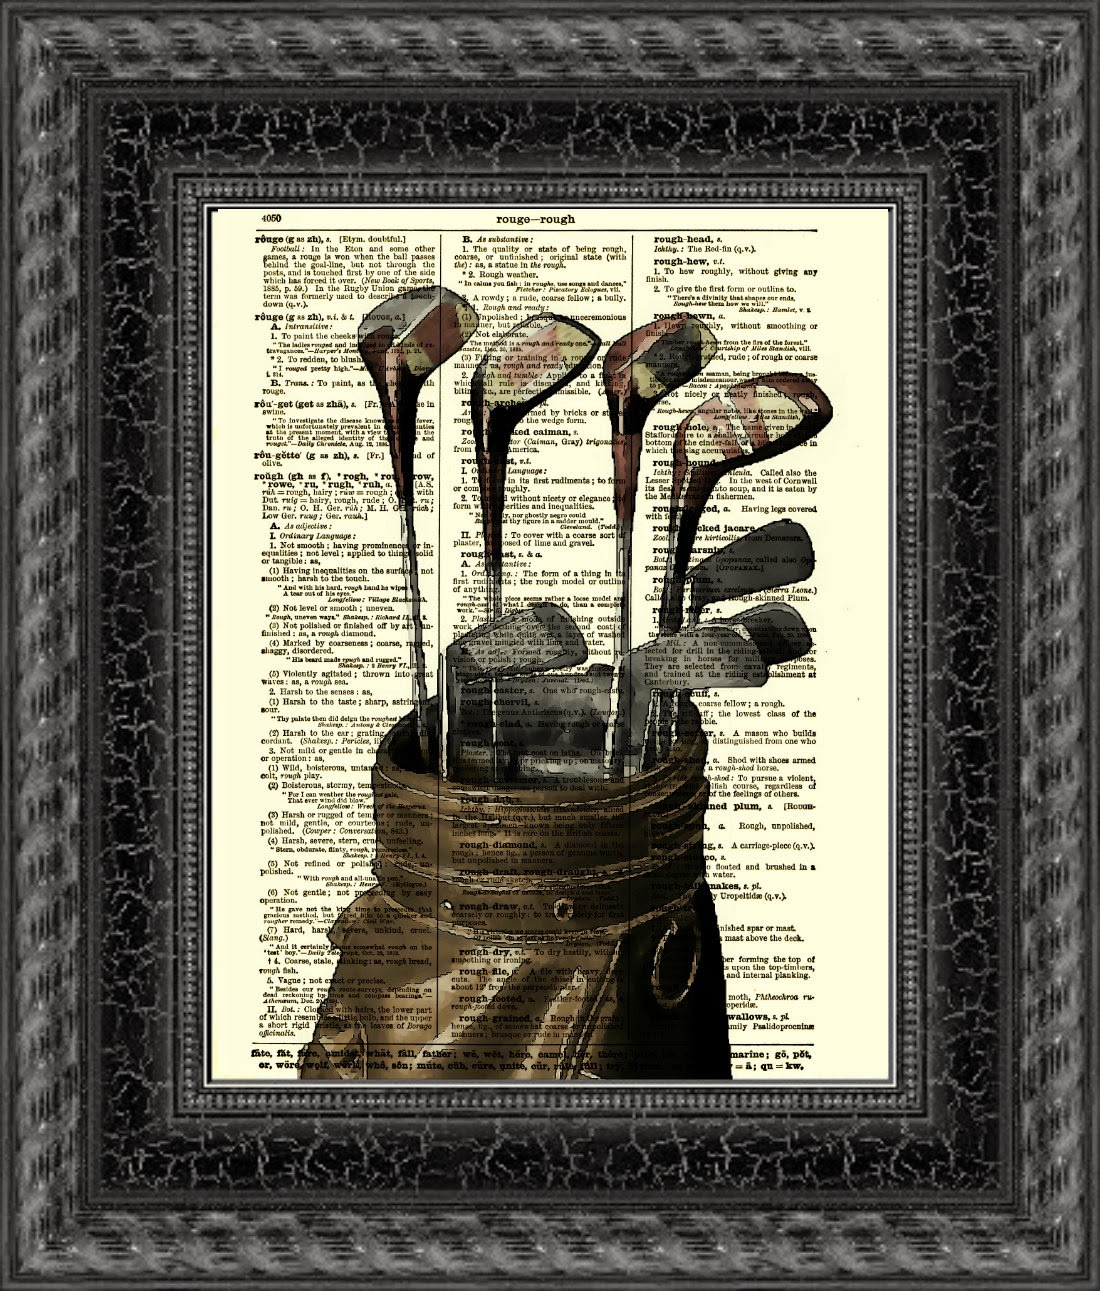 19-Golf-Club-Art-Belle-Old-Books-and-Dictionaries-in-Re-Imagination-Prints-www-designstack-co